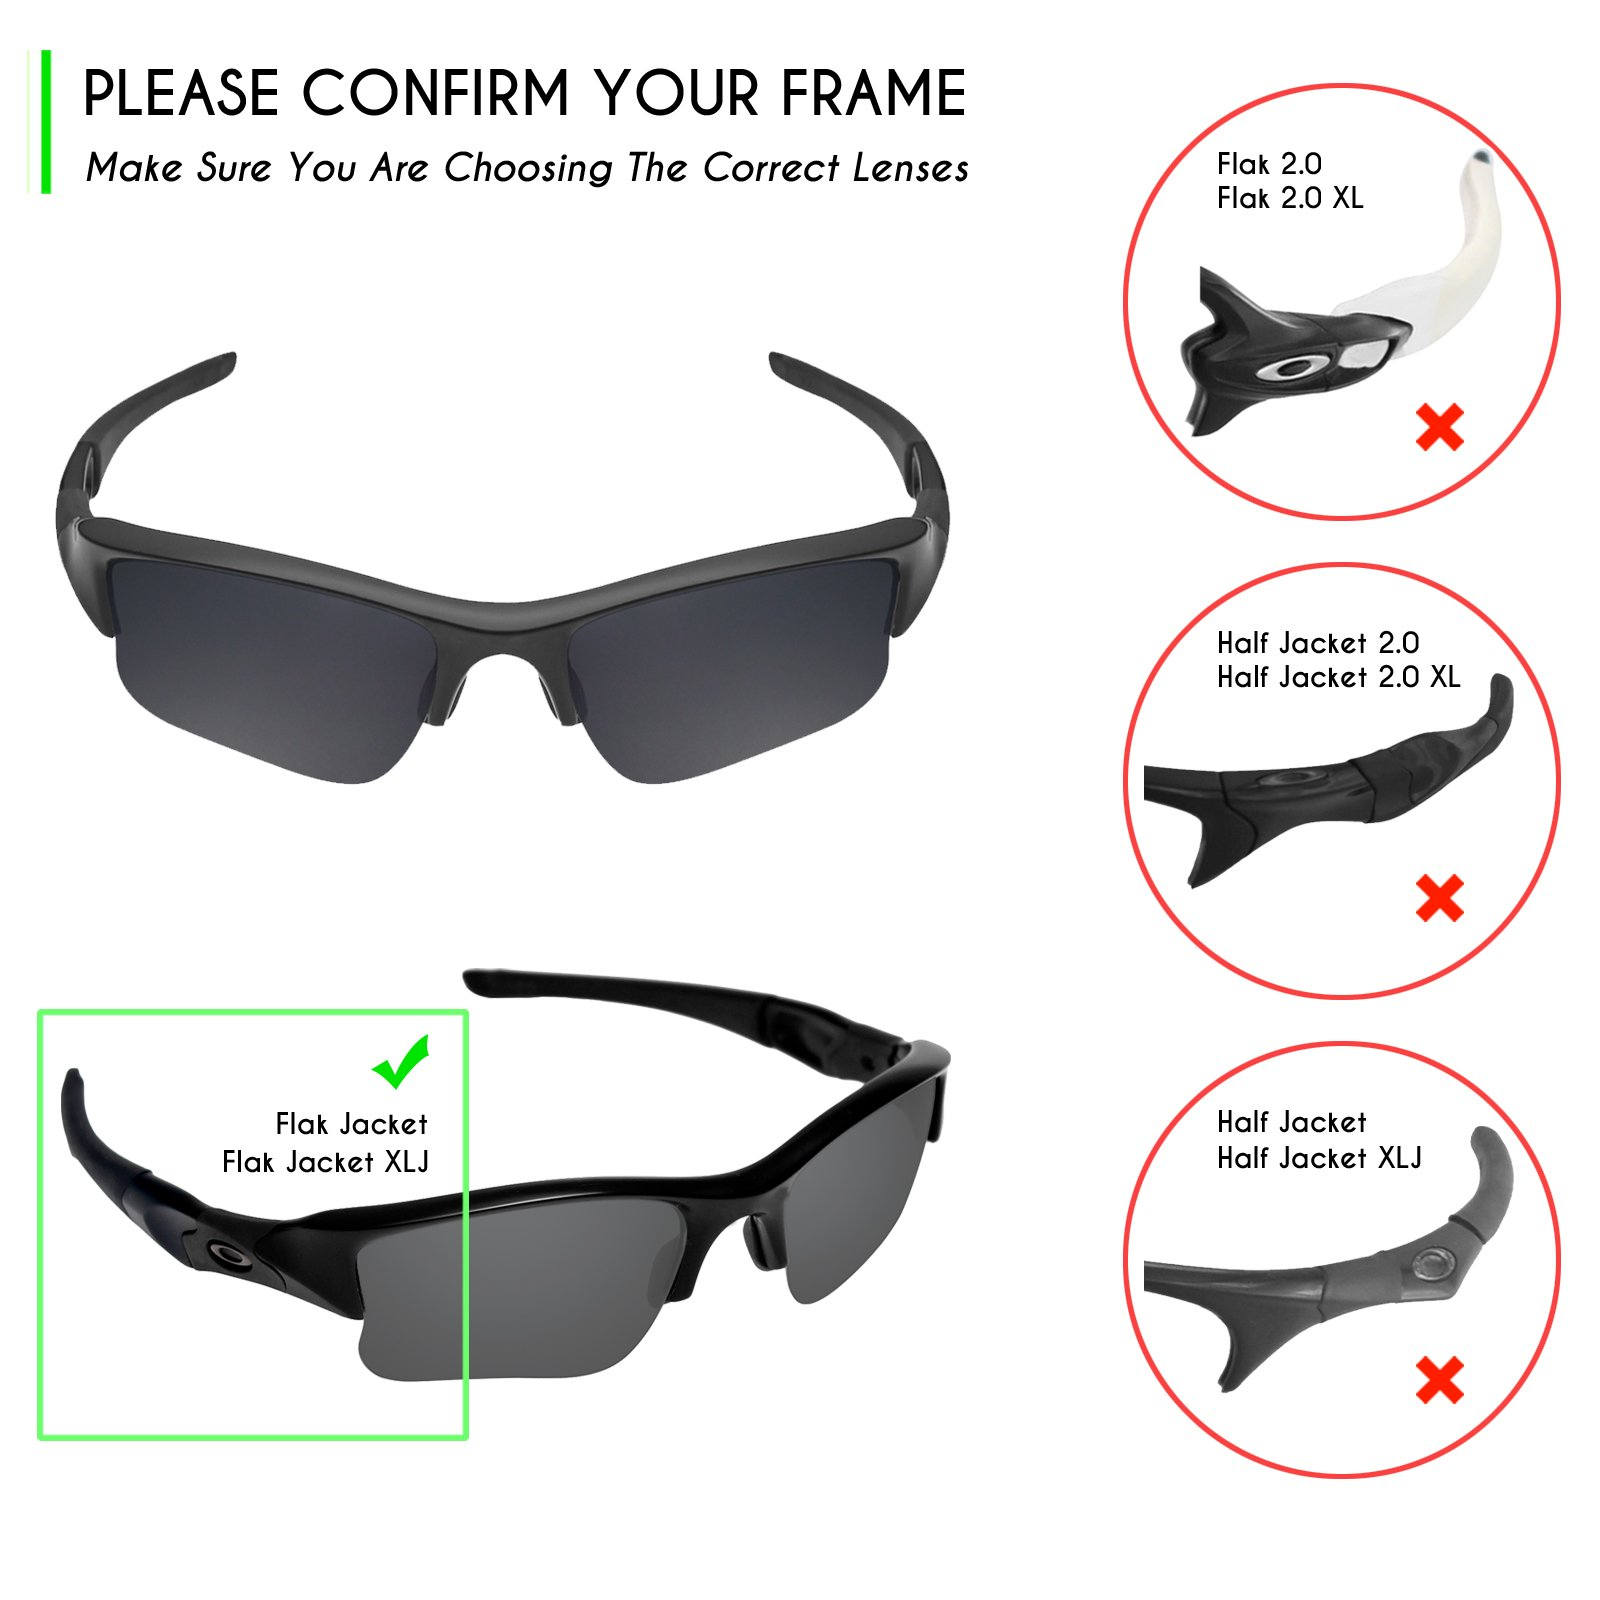 Mryok 2 Pair Polarized Replacement Lenses for Oakley Flak Jacket XLJ Sunglass - Options by Mryok (Image #6)